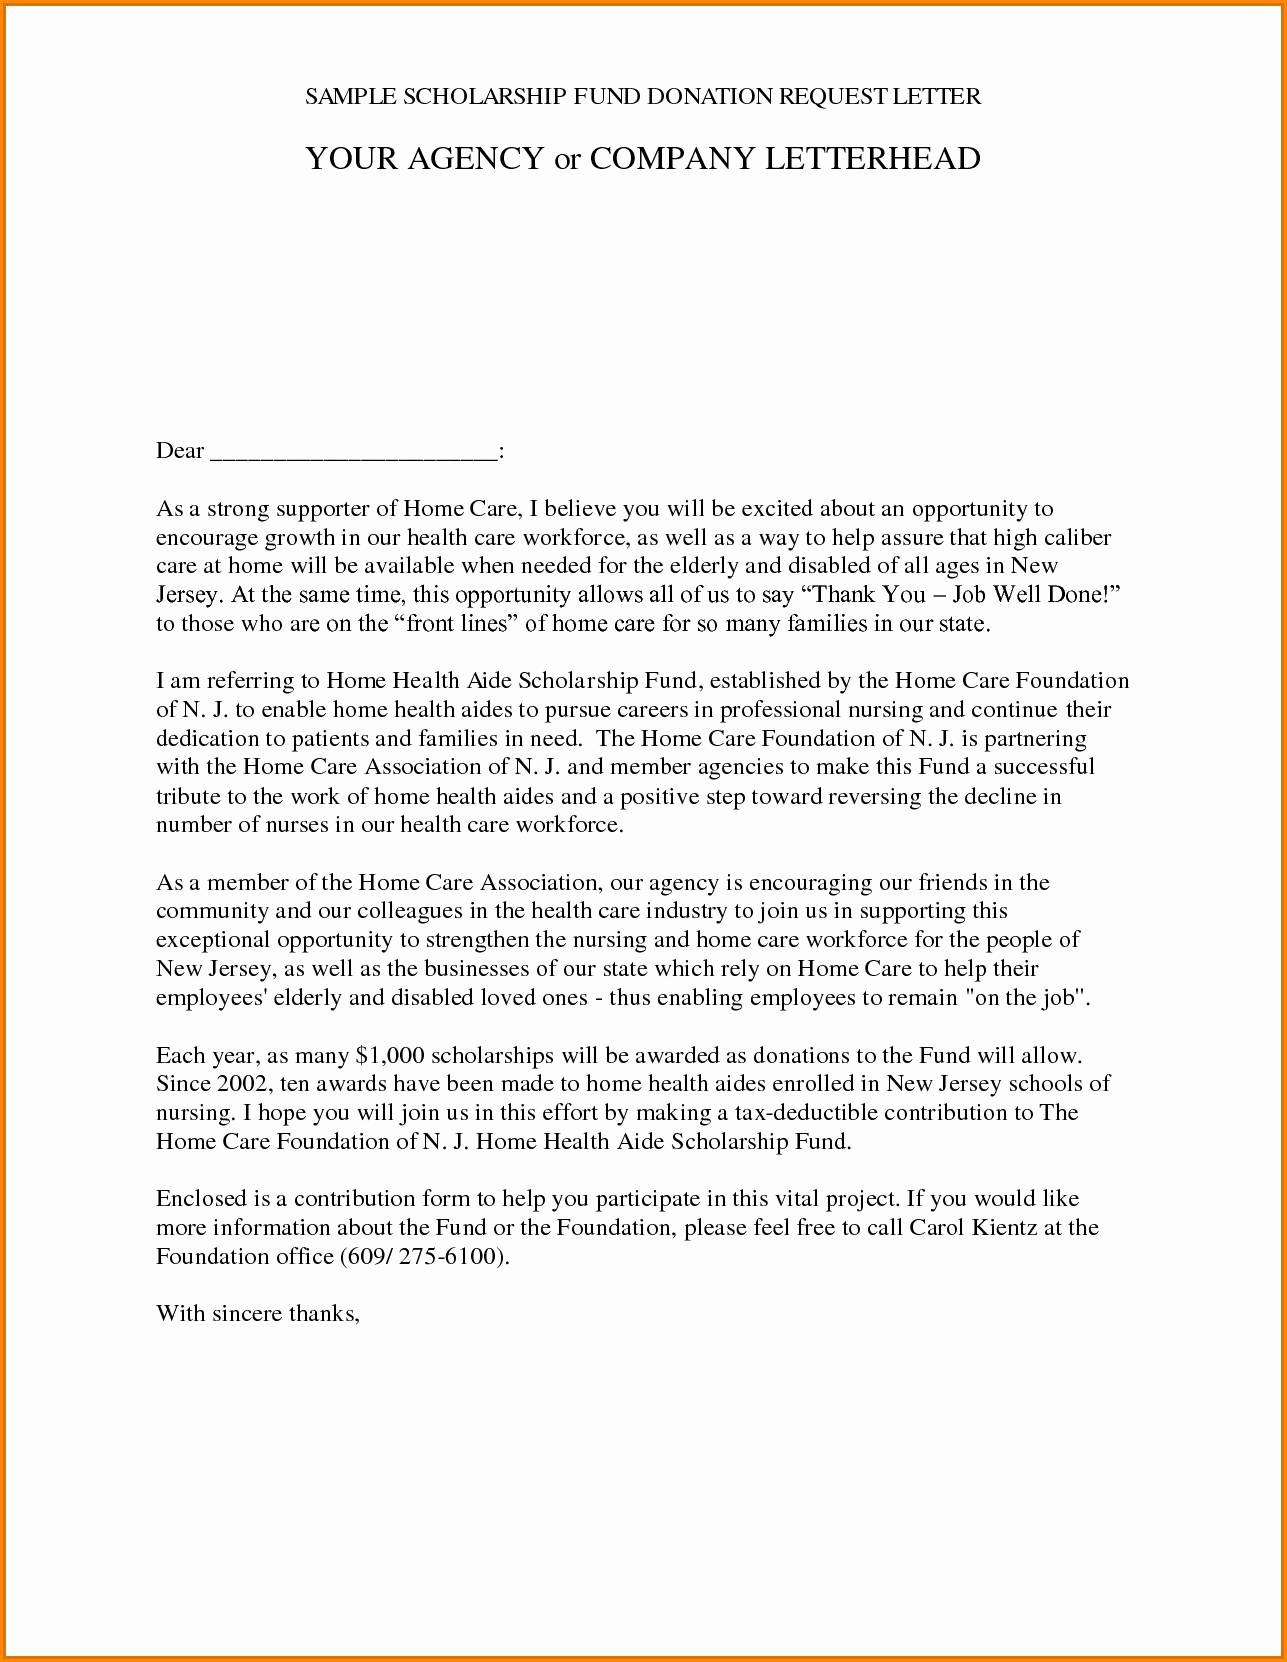 Request for Donations Letter Template Free - Best Donation Letter Template